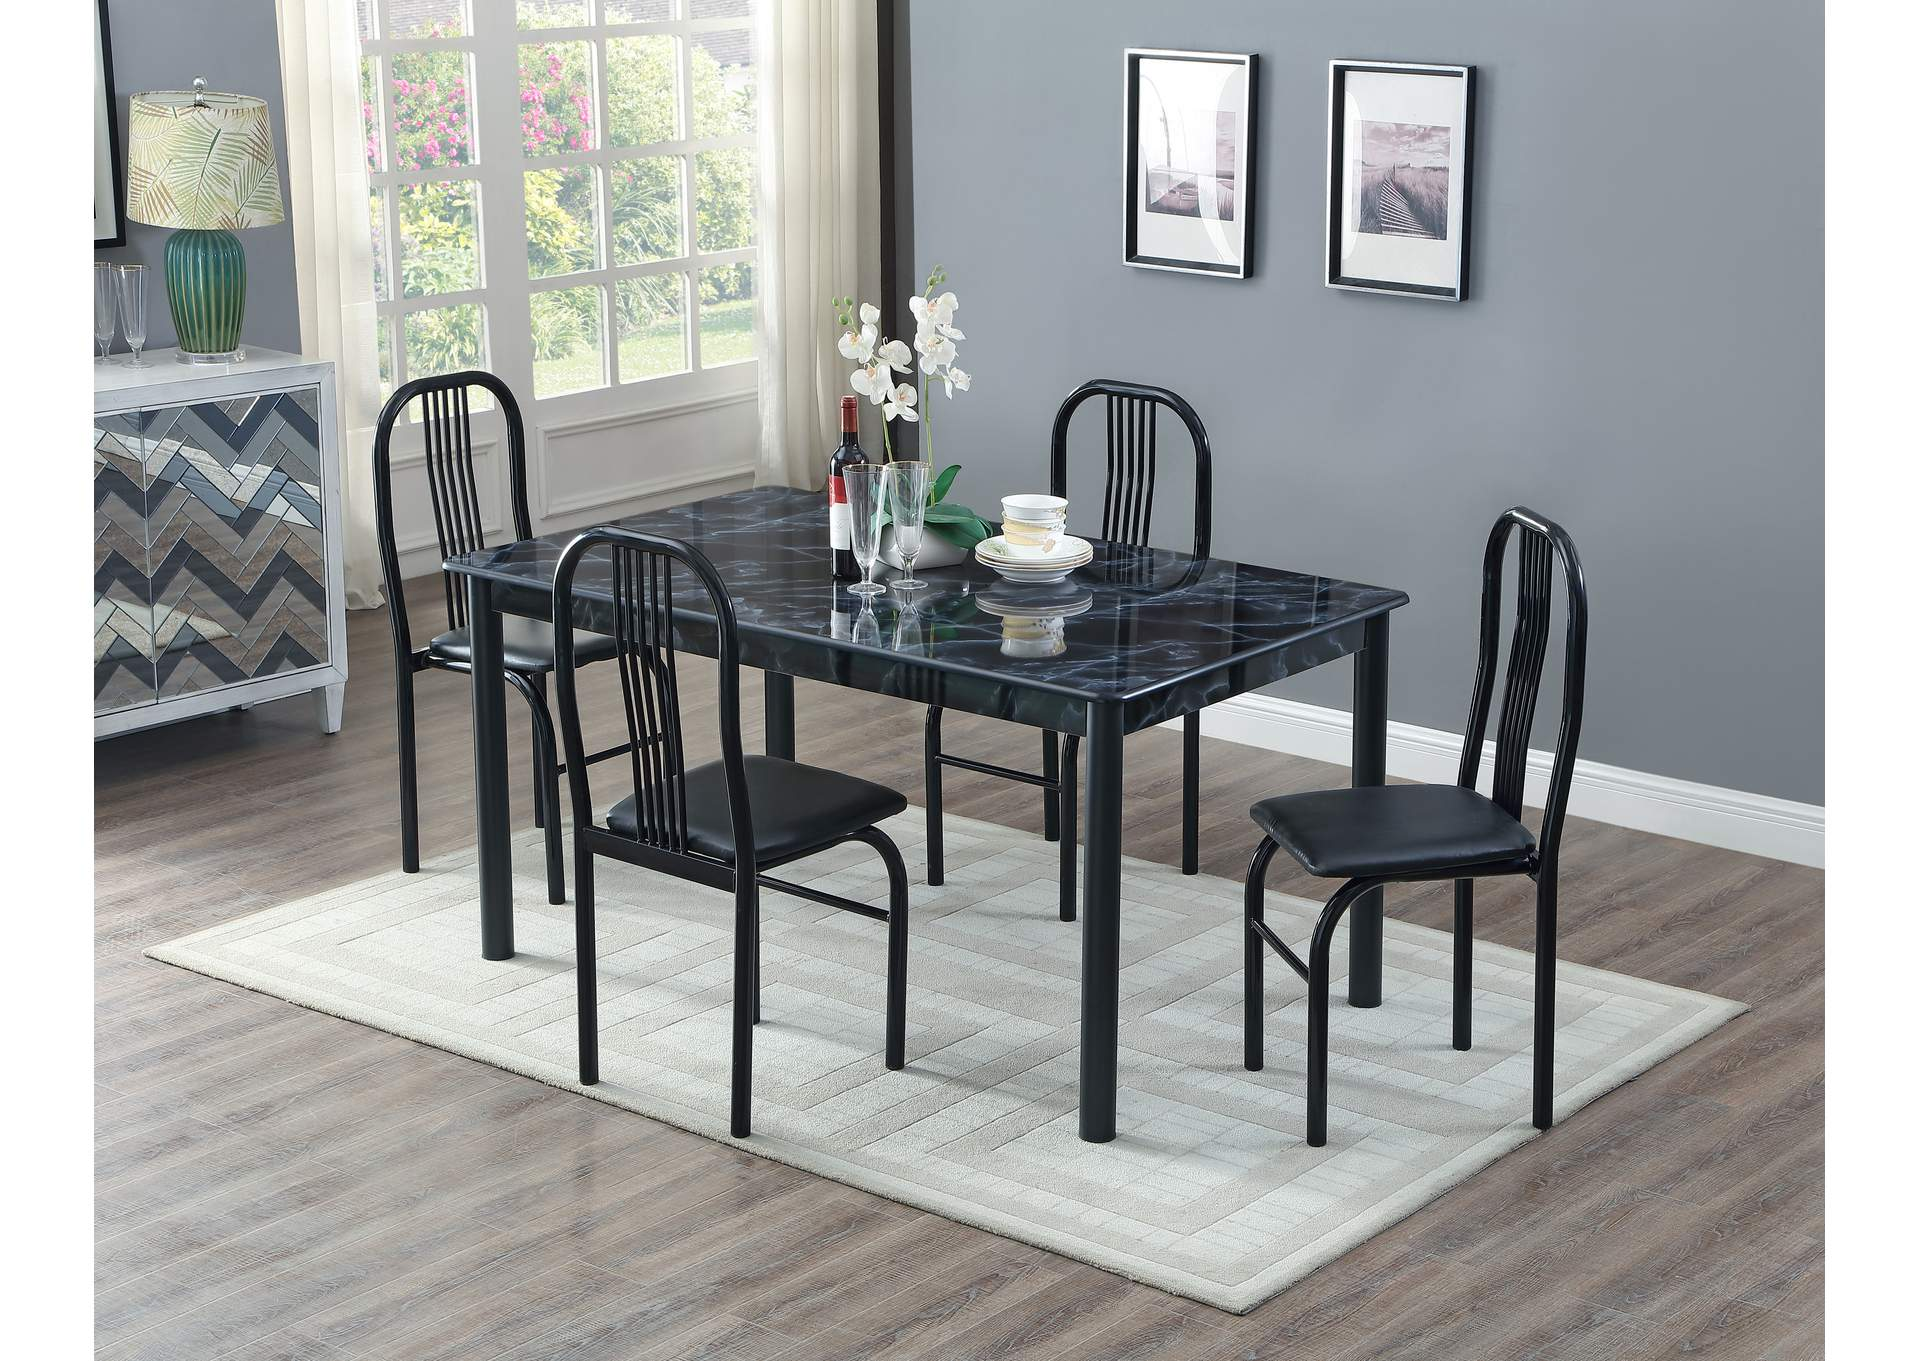 Black Marble Top Welded Dinette W/ 4 chairs,Global Trading